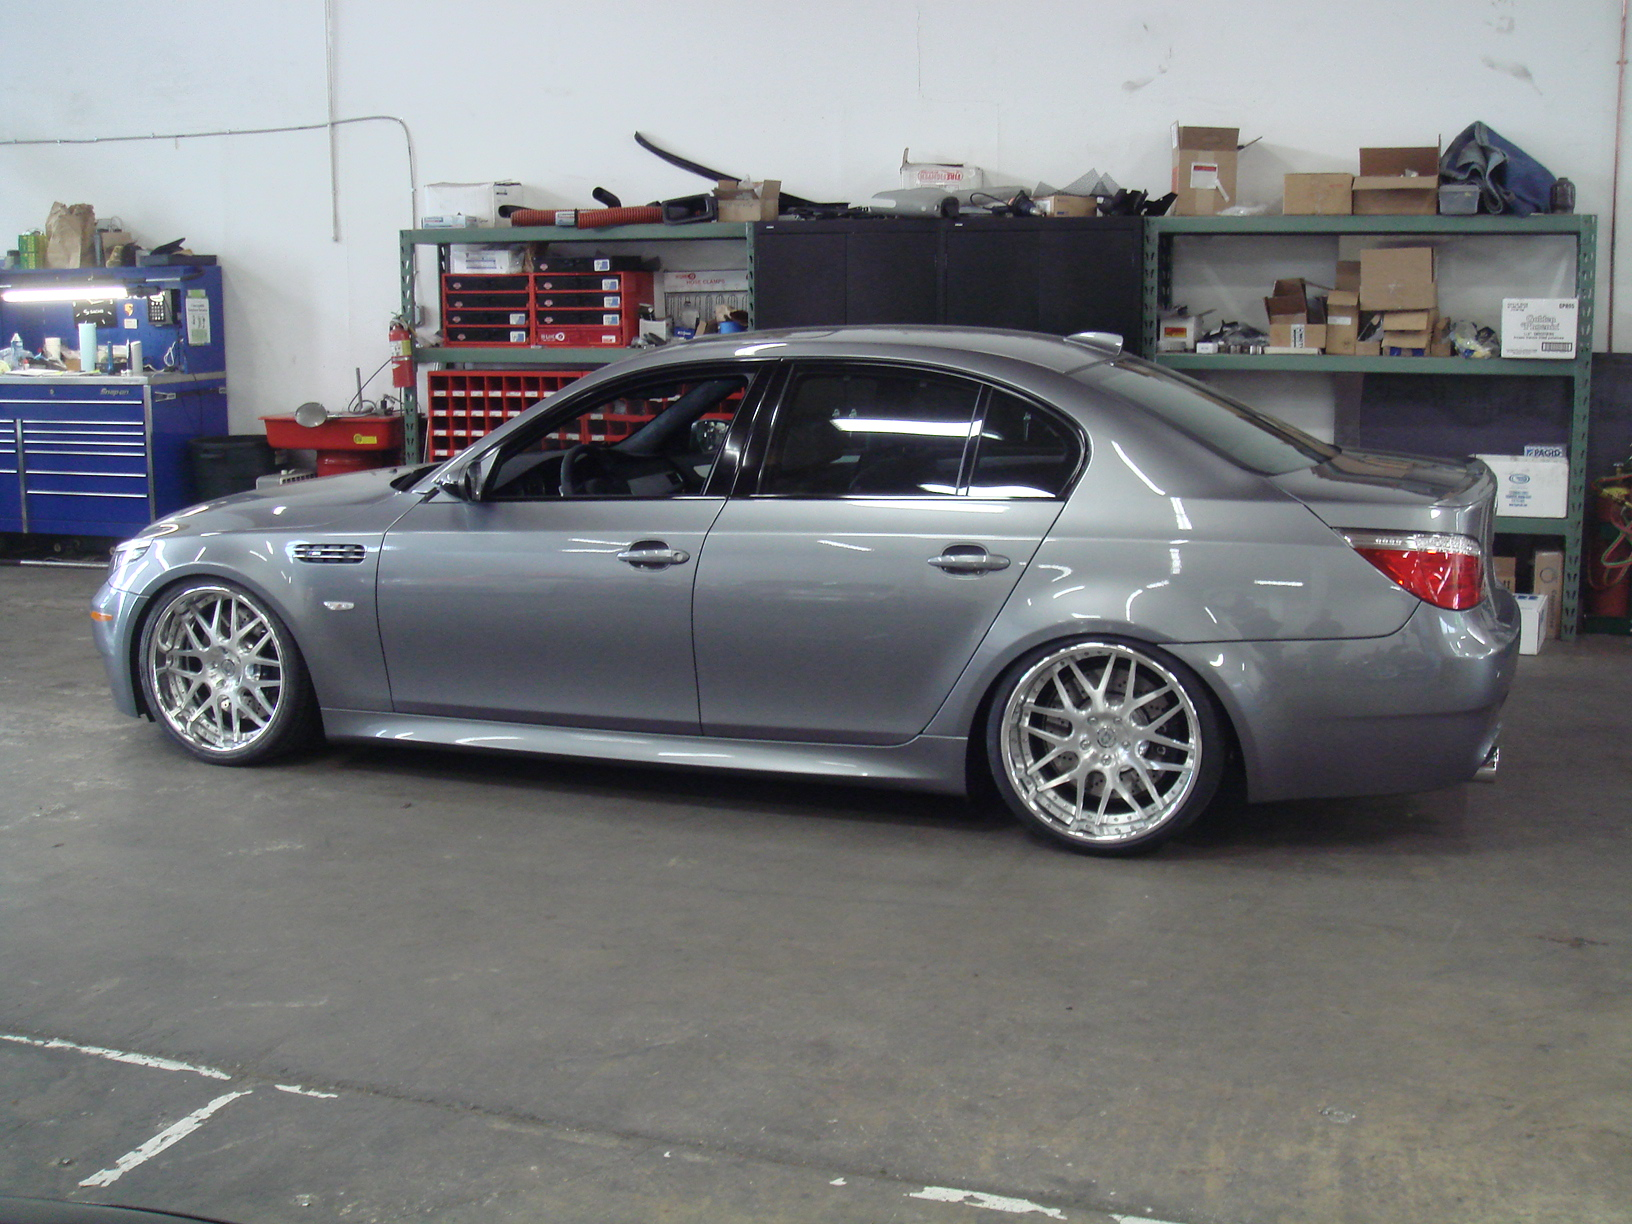 New shock springs on a 535i how much labor archive bimmerfest bmw forums